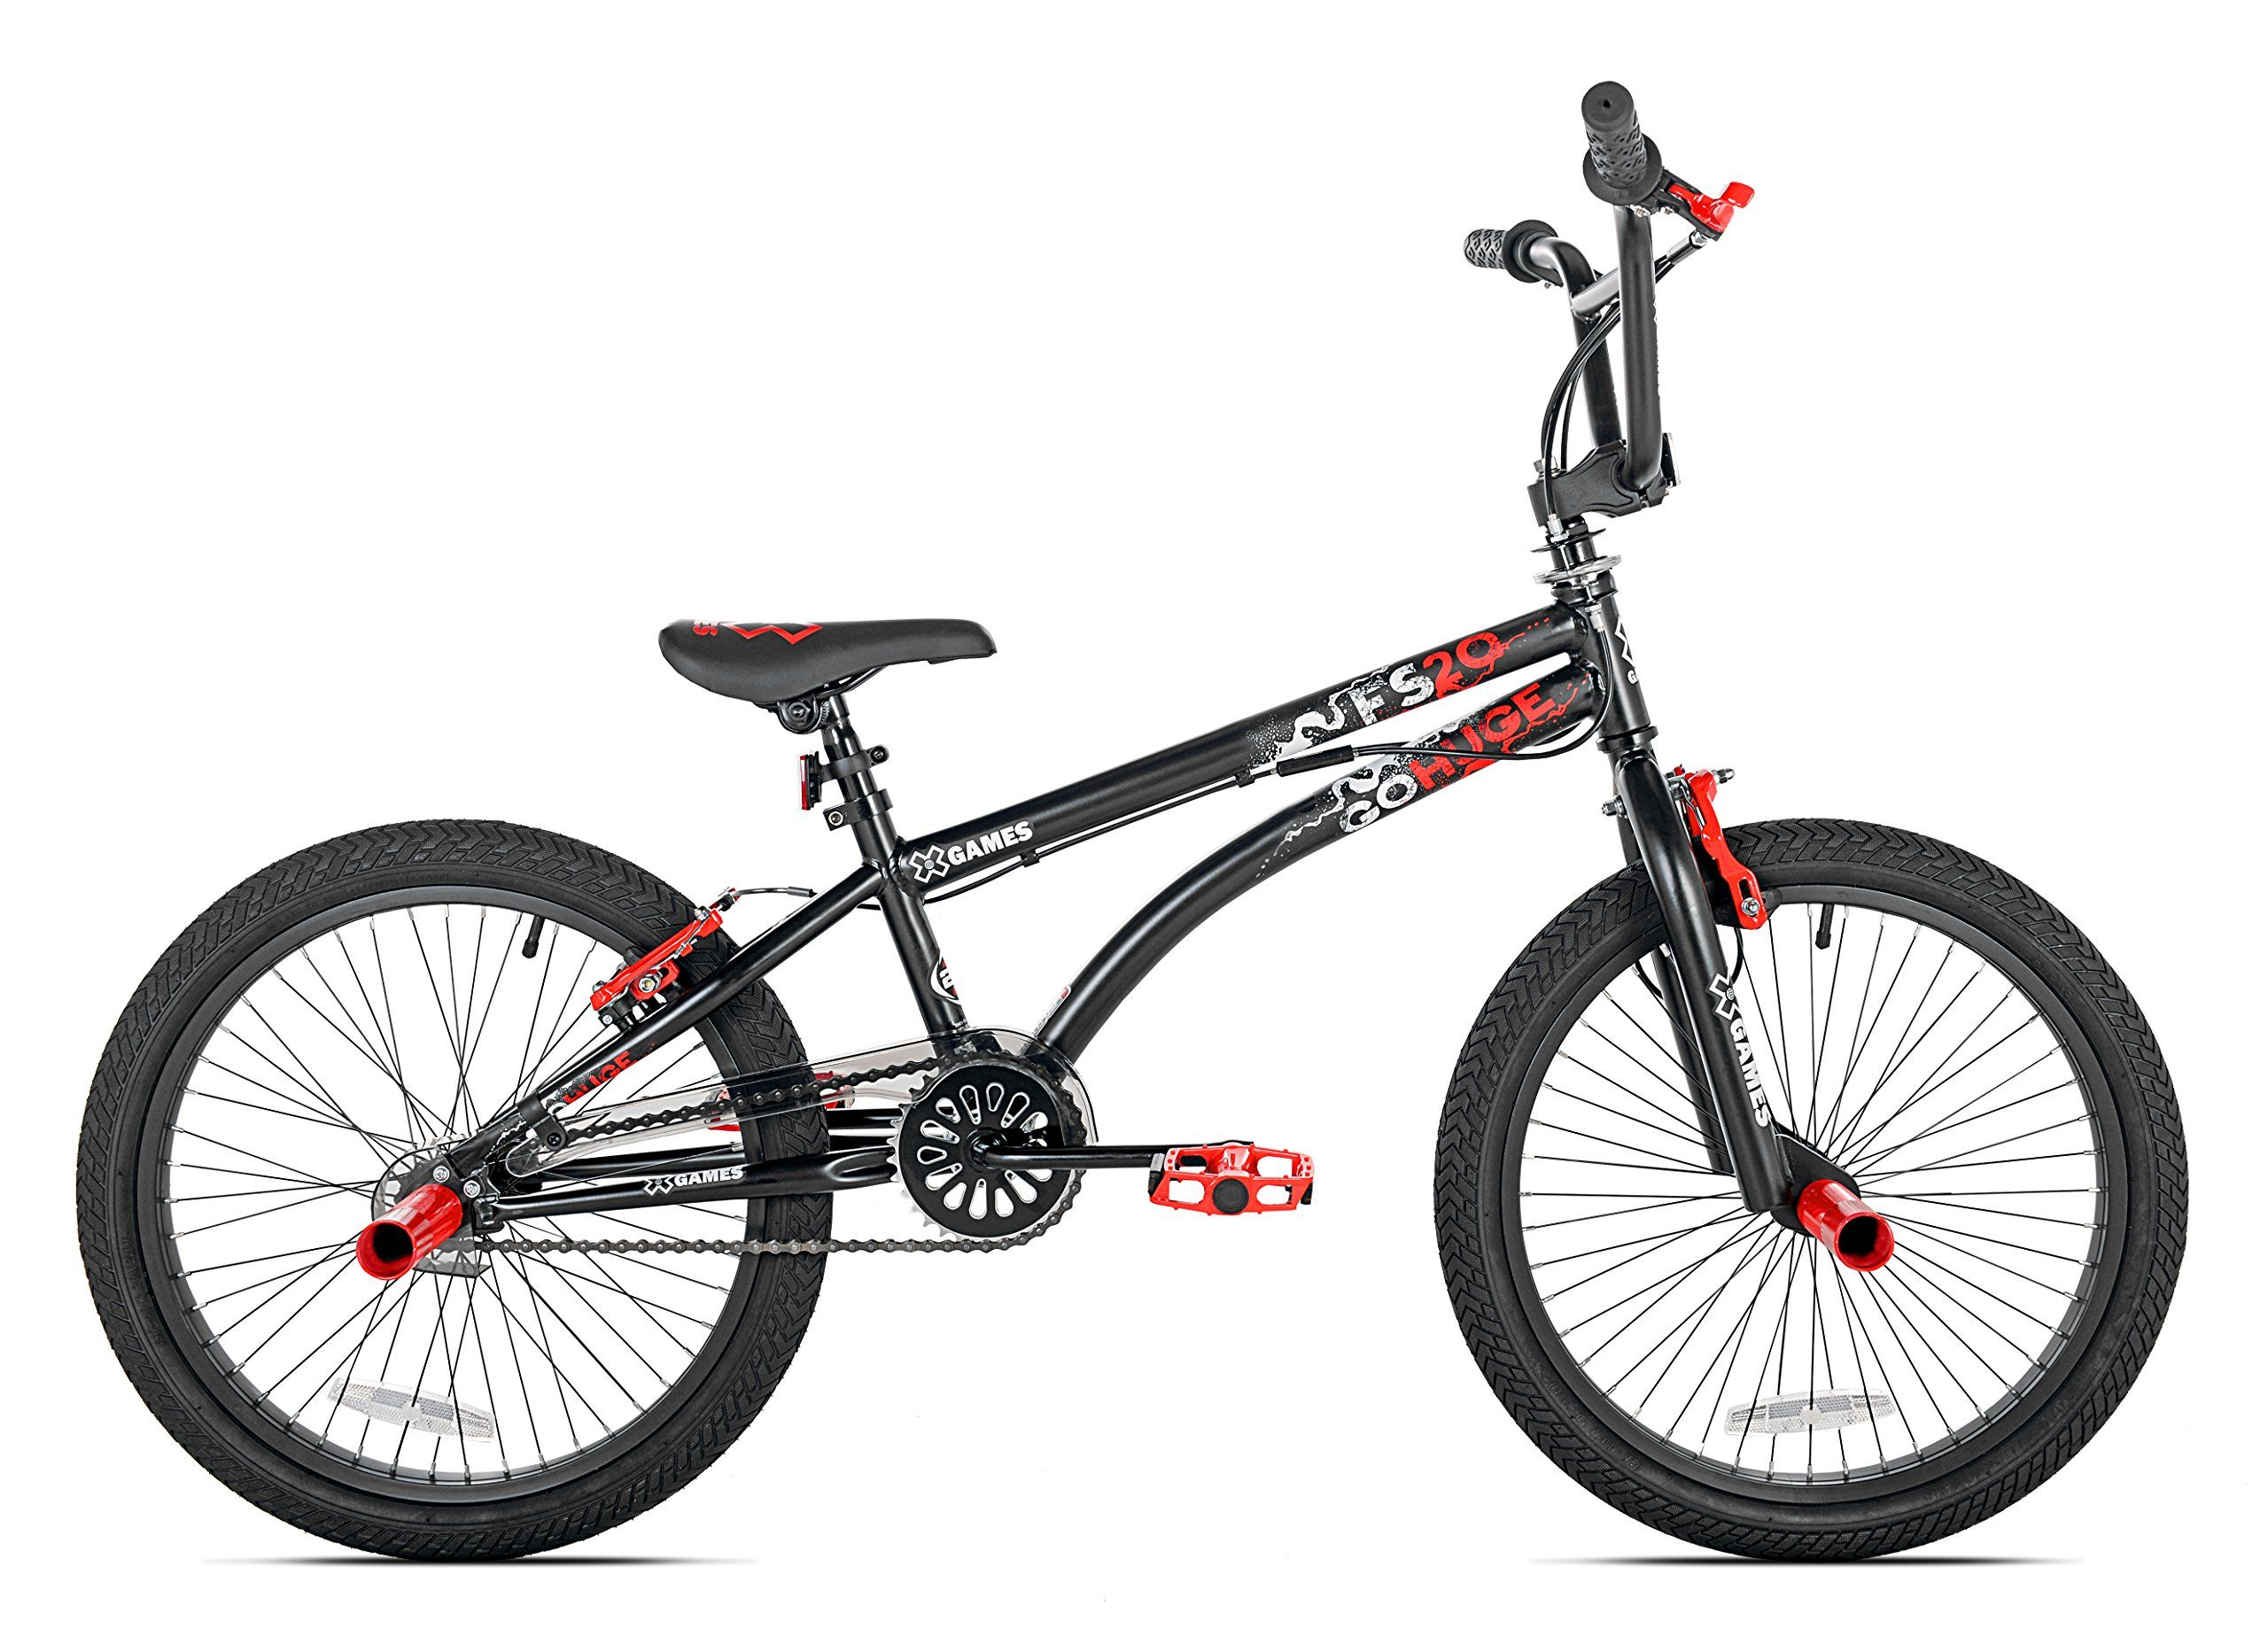 Xgames Fs20 Bmx Freestyle Bicycle 20inch Black Red See This Great Product It Is Amazon Affiliate Link Kidsgameideas Bmx Bikes Bmx Freestyle Bmx